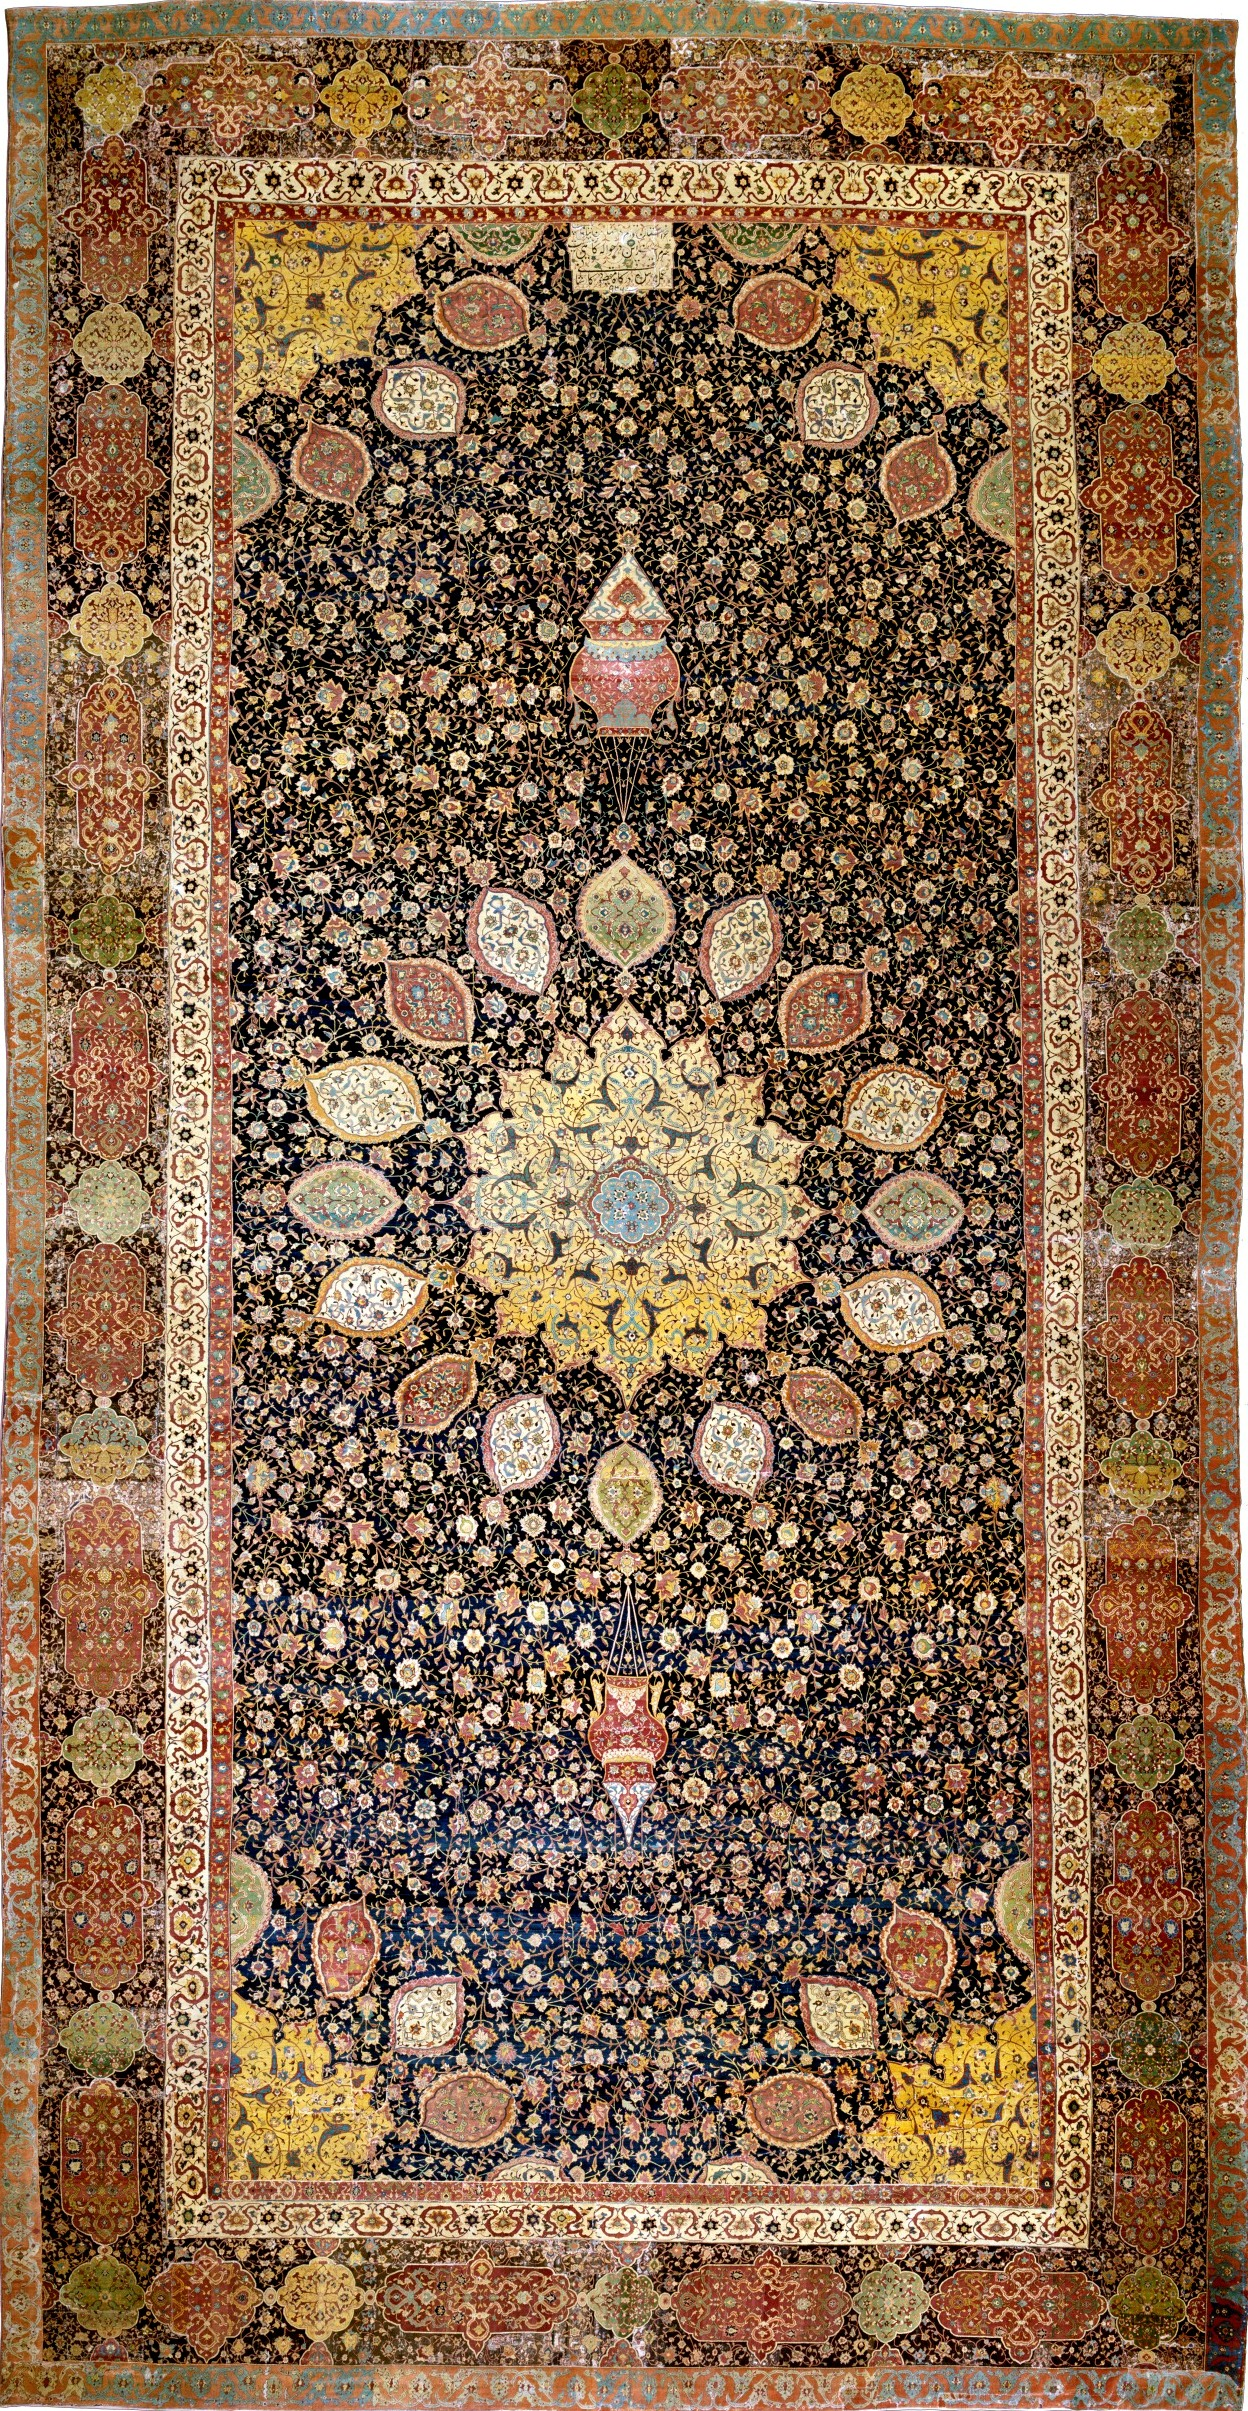 The Ardabil Carpet Probably Finest Surviving Persian Tabriz Mid 16th Century